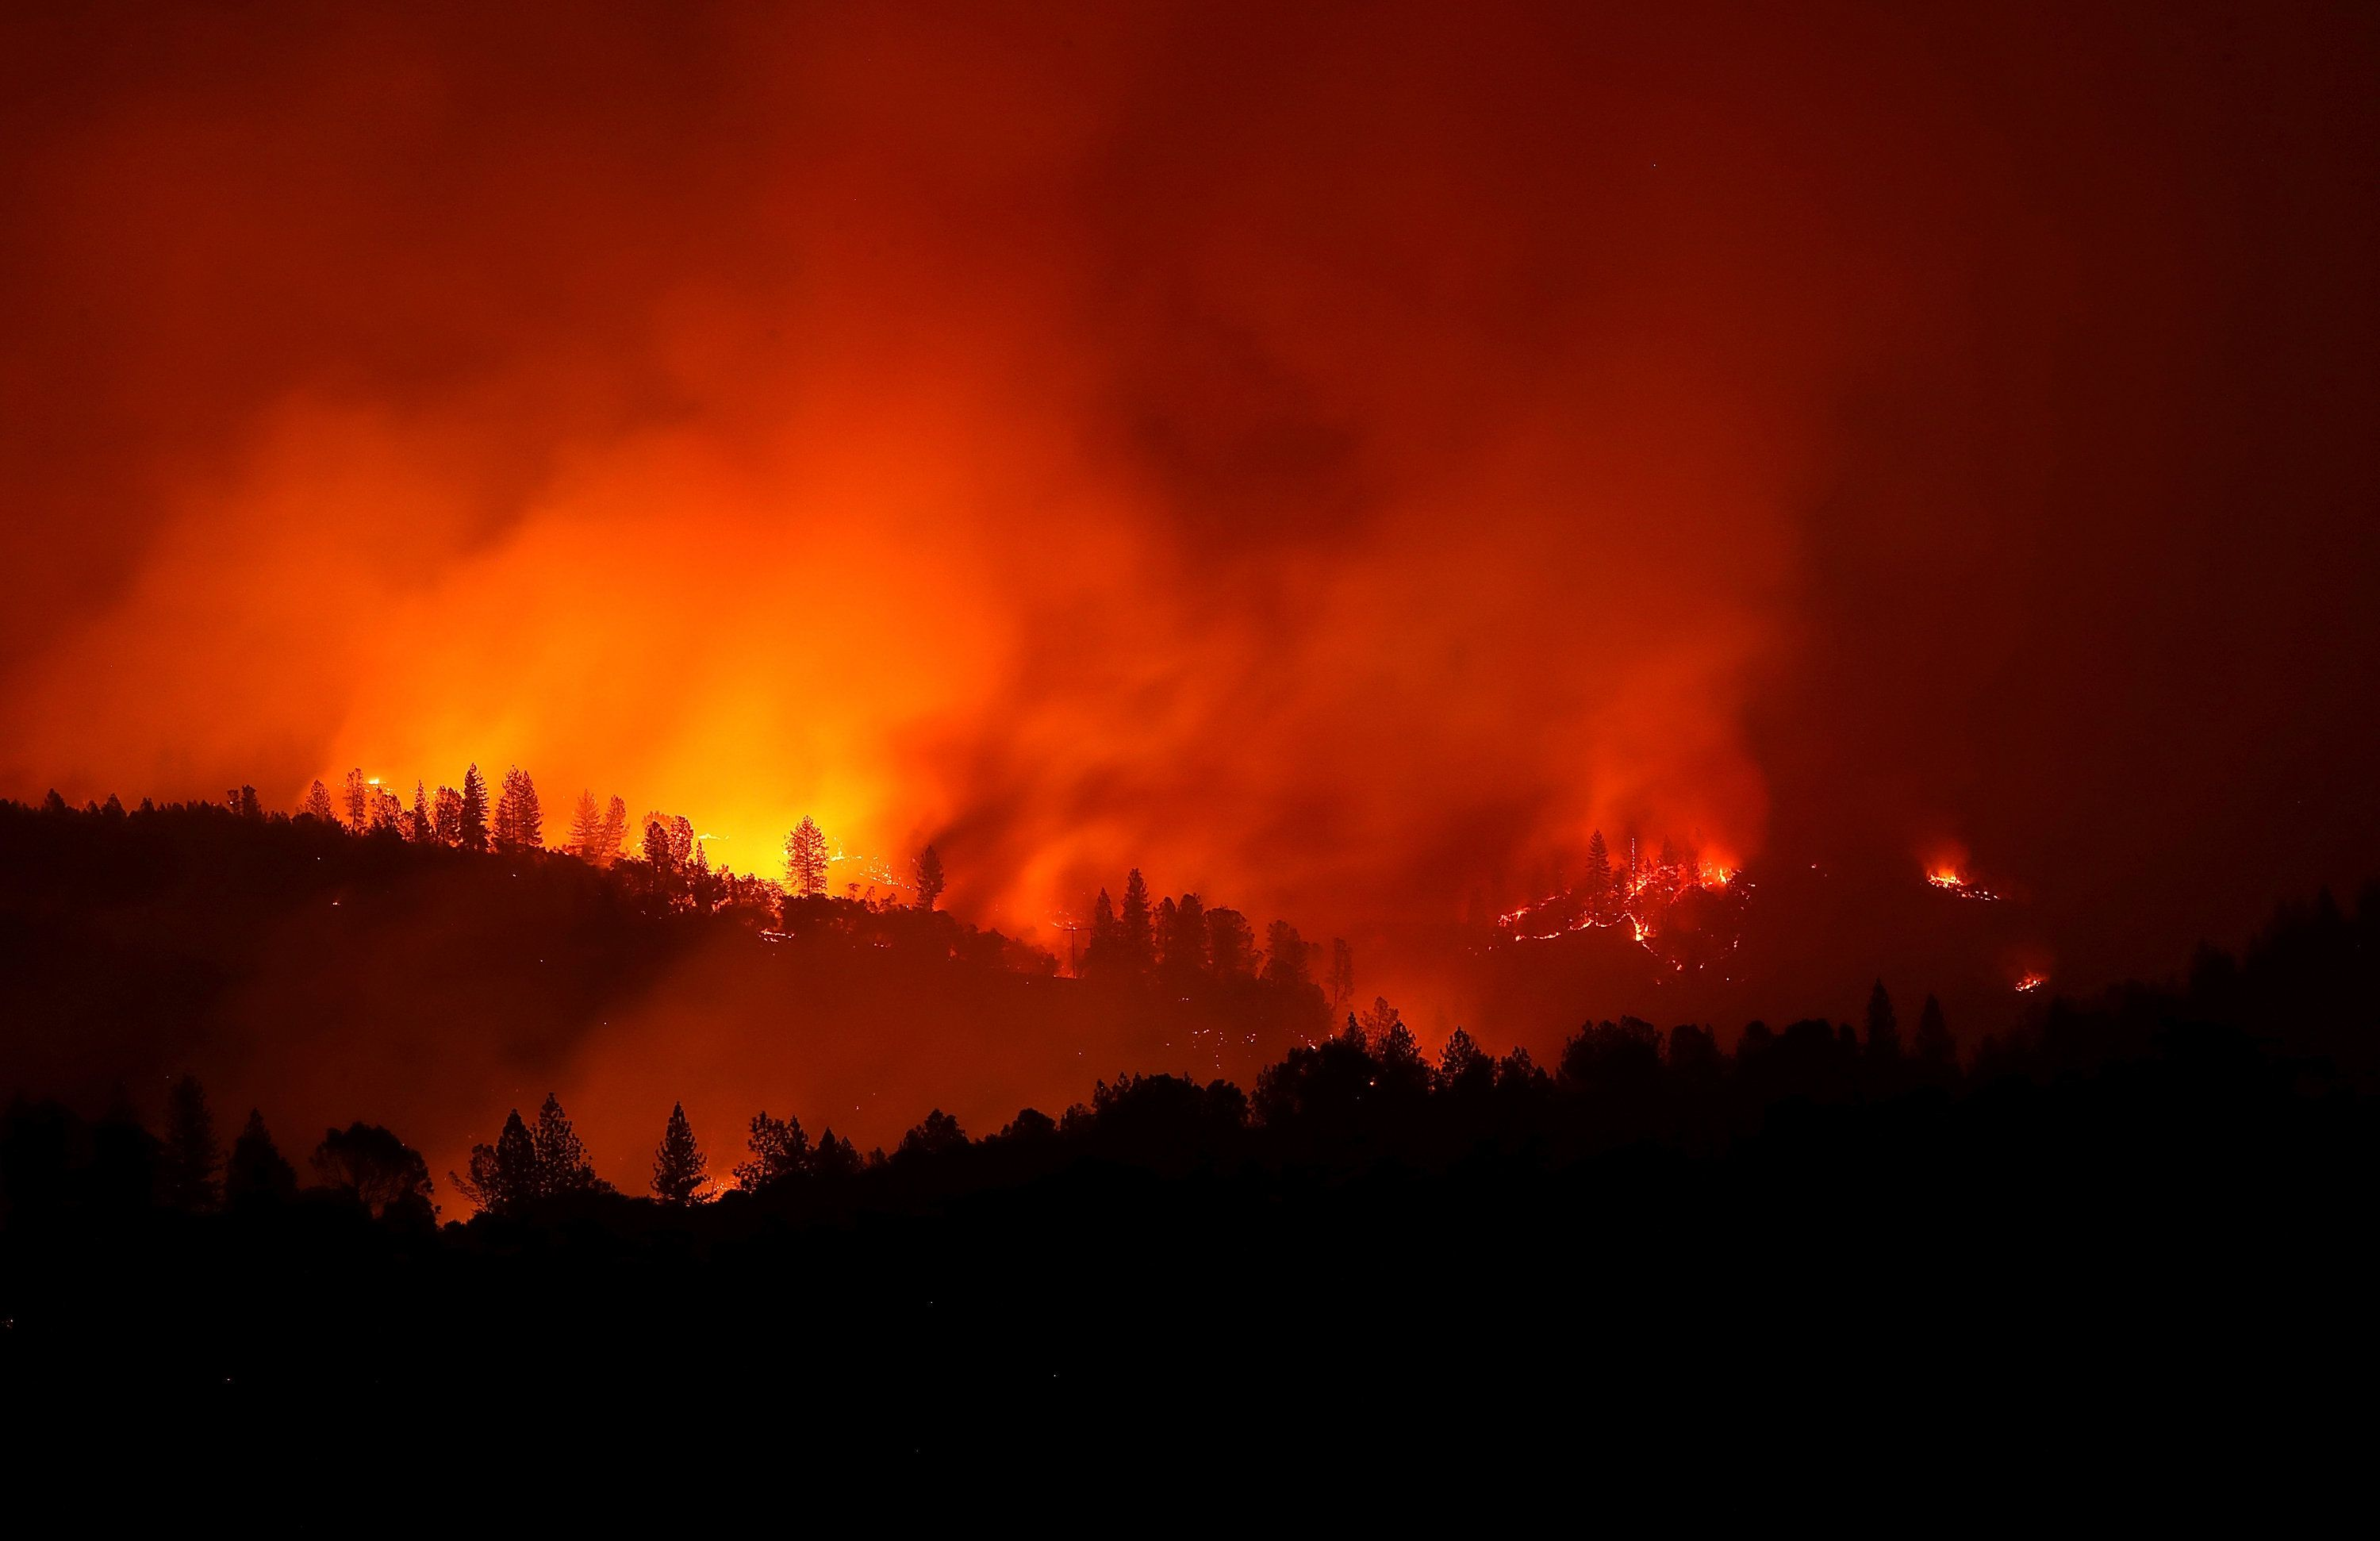 OROVILLE, CA - NOVEMBER 11:  The Camp Fire burns in the hills on November 11, 2018 near Oroville, California. Fueled by high winds and low humidity the Camp Fire ripped through the town of Paradise charring over 105,000 acres, killed 23 people and has destroyed over 6,700 homes and businesses. The fire is currently at 25 percent containment.  (Photo by Justin Sullivan/Getty Images)